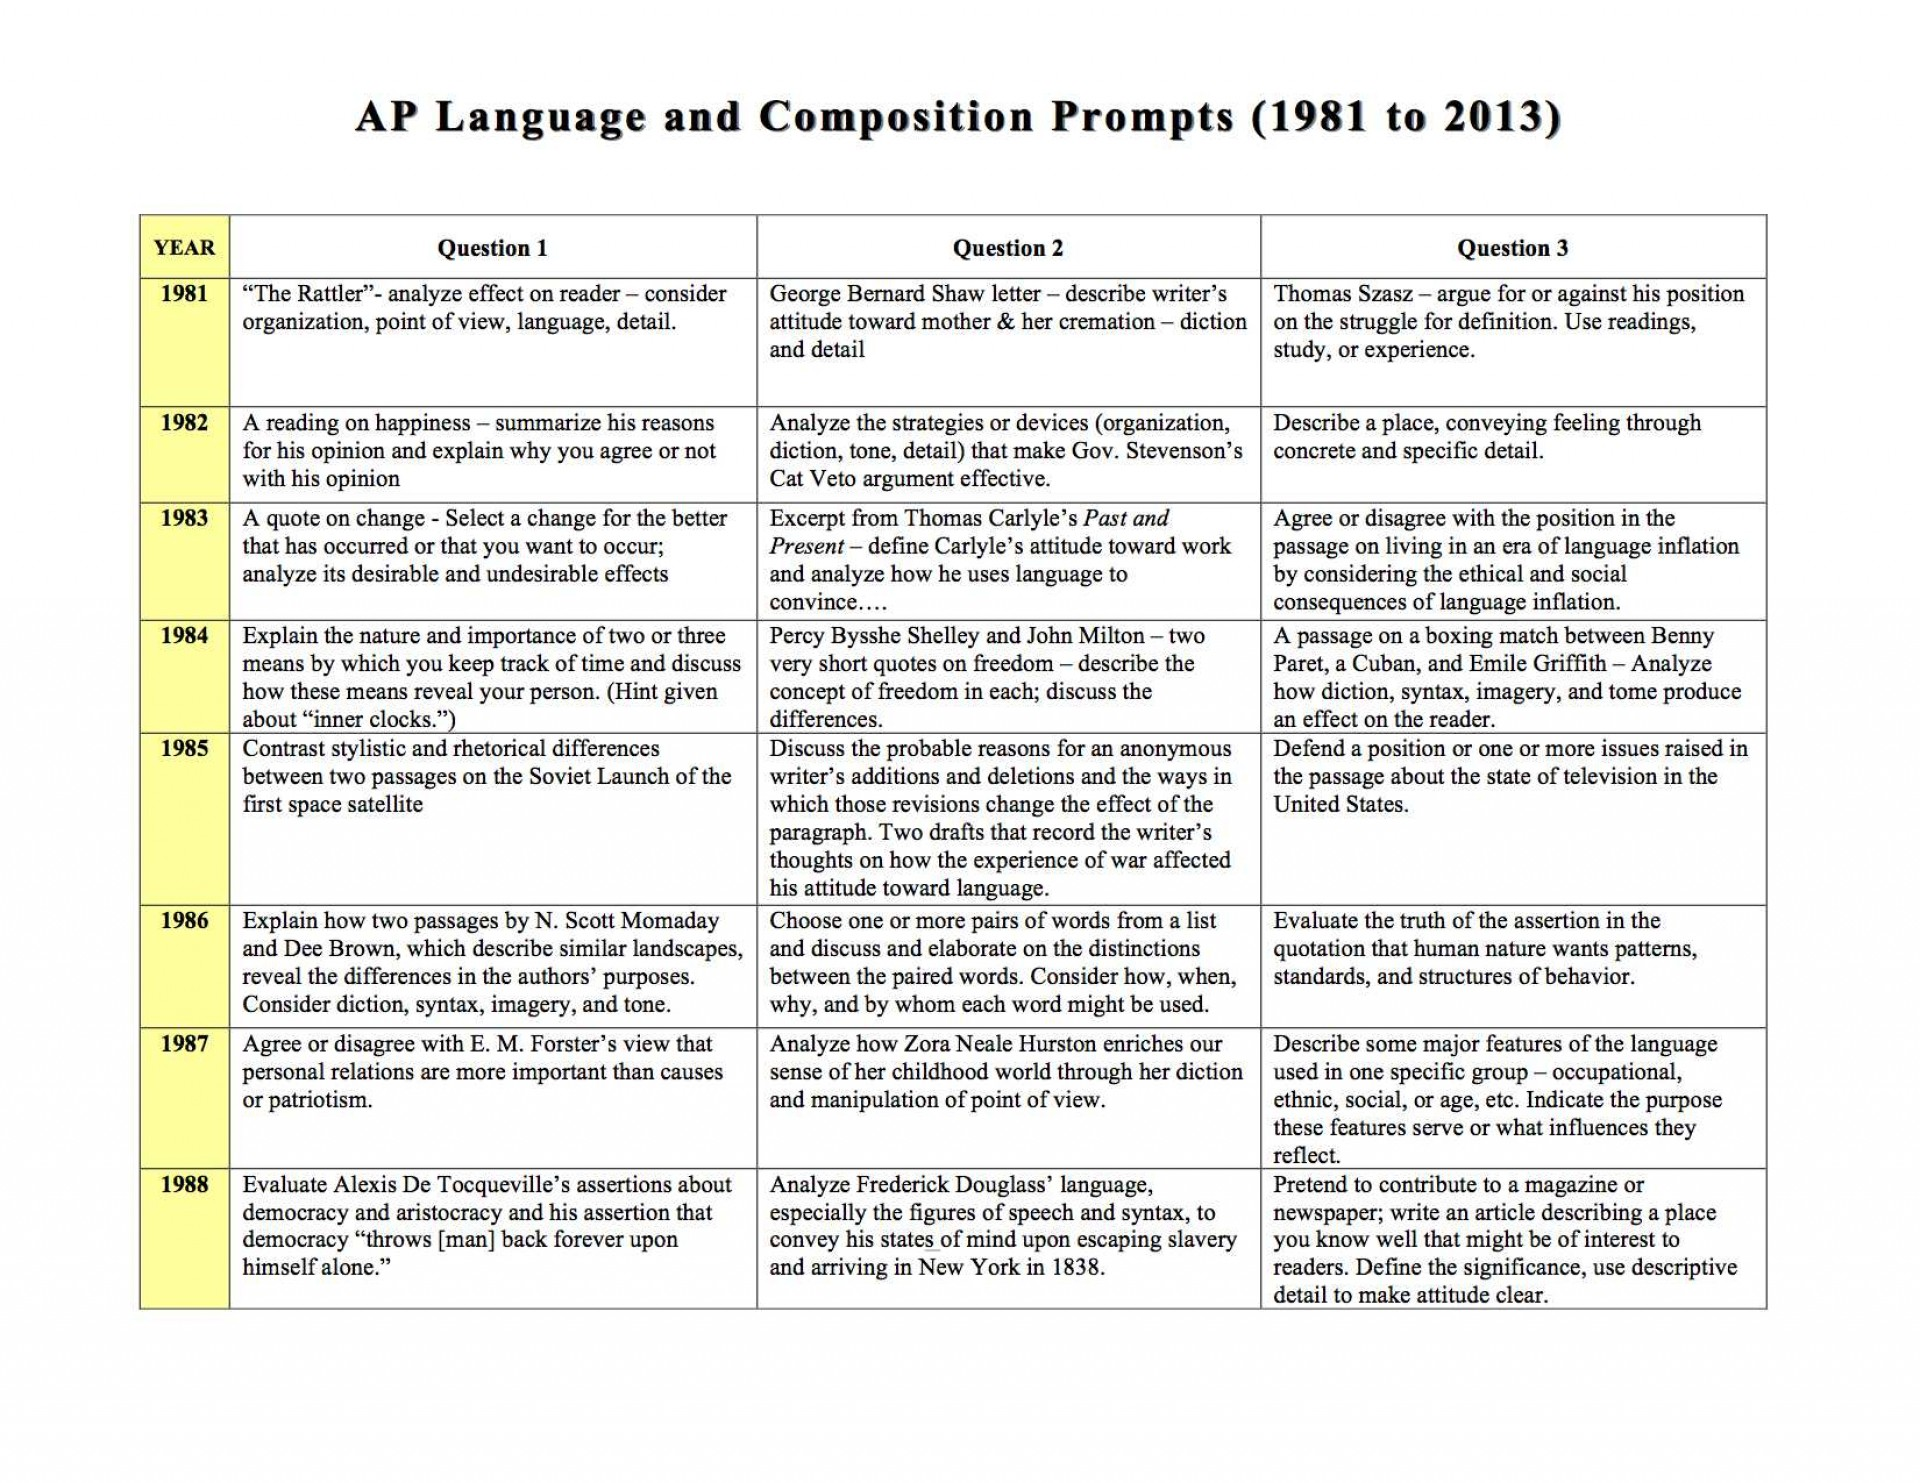 011 Ap English Research Paper Outline Ap20language Prompts Formidable For Essay College Outlines 1920